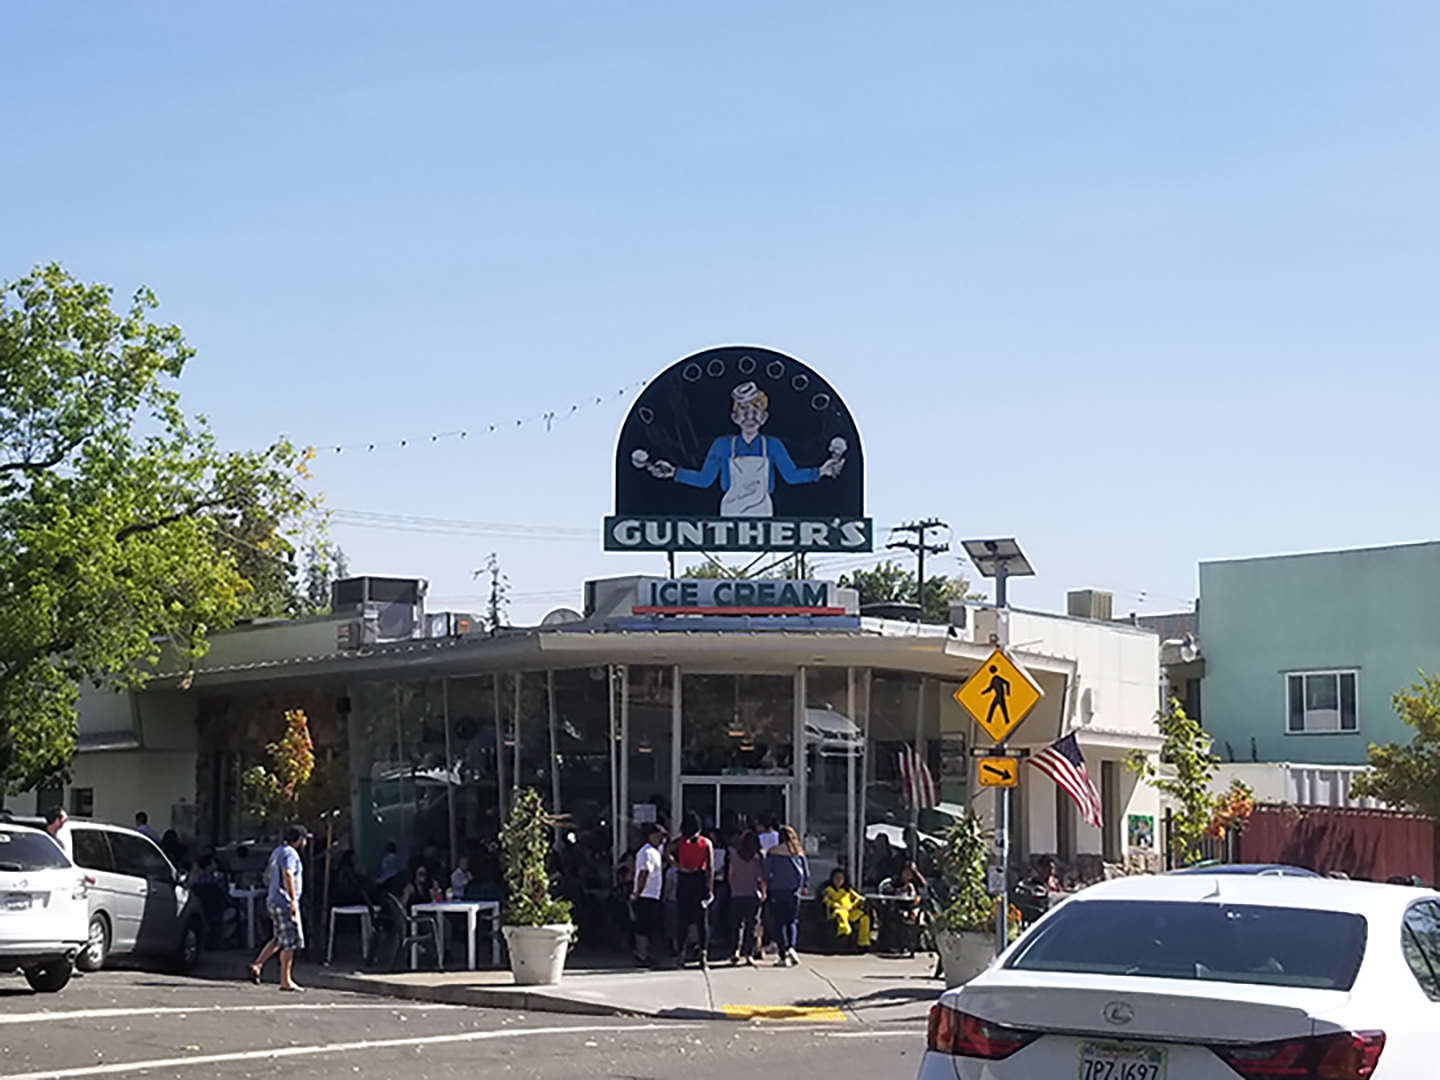 Gunther's Ice Cream Shop has been a Sacramento institution since 1940.